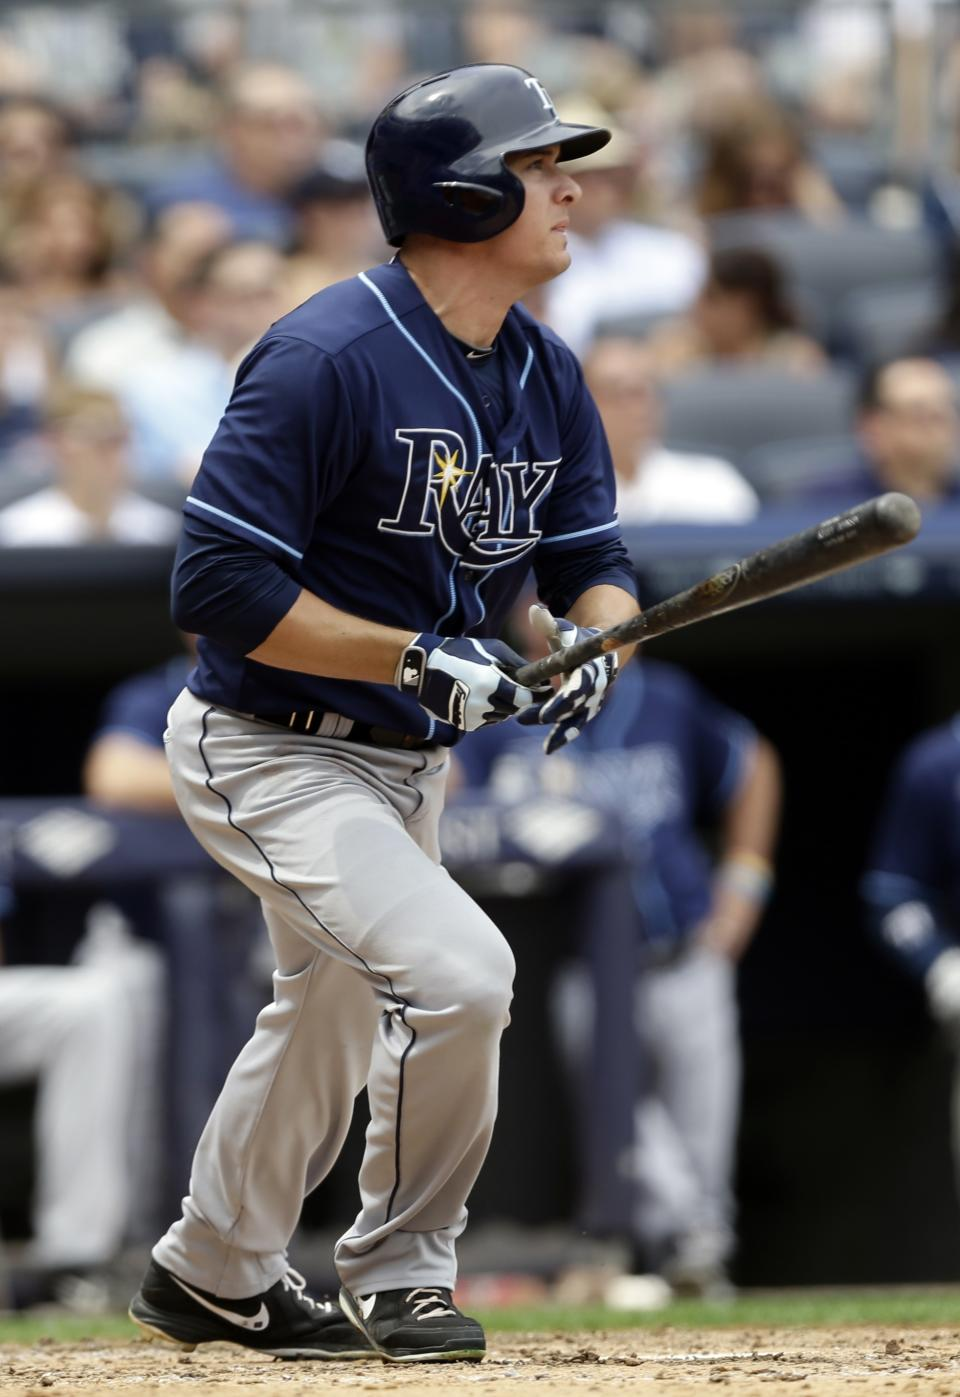 Tampa Bay Rays' Kelly Johnson watches his RBI single during the sixth inning of a baseball game against the New York Yankees Saturday, July 27, 2013, in New York. (AP Photo/Frank Franklin II)